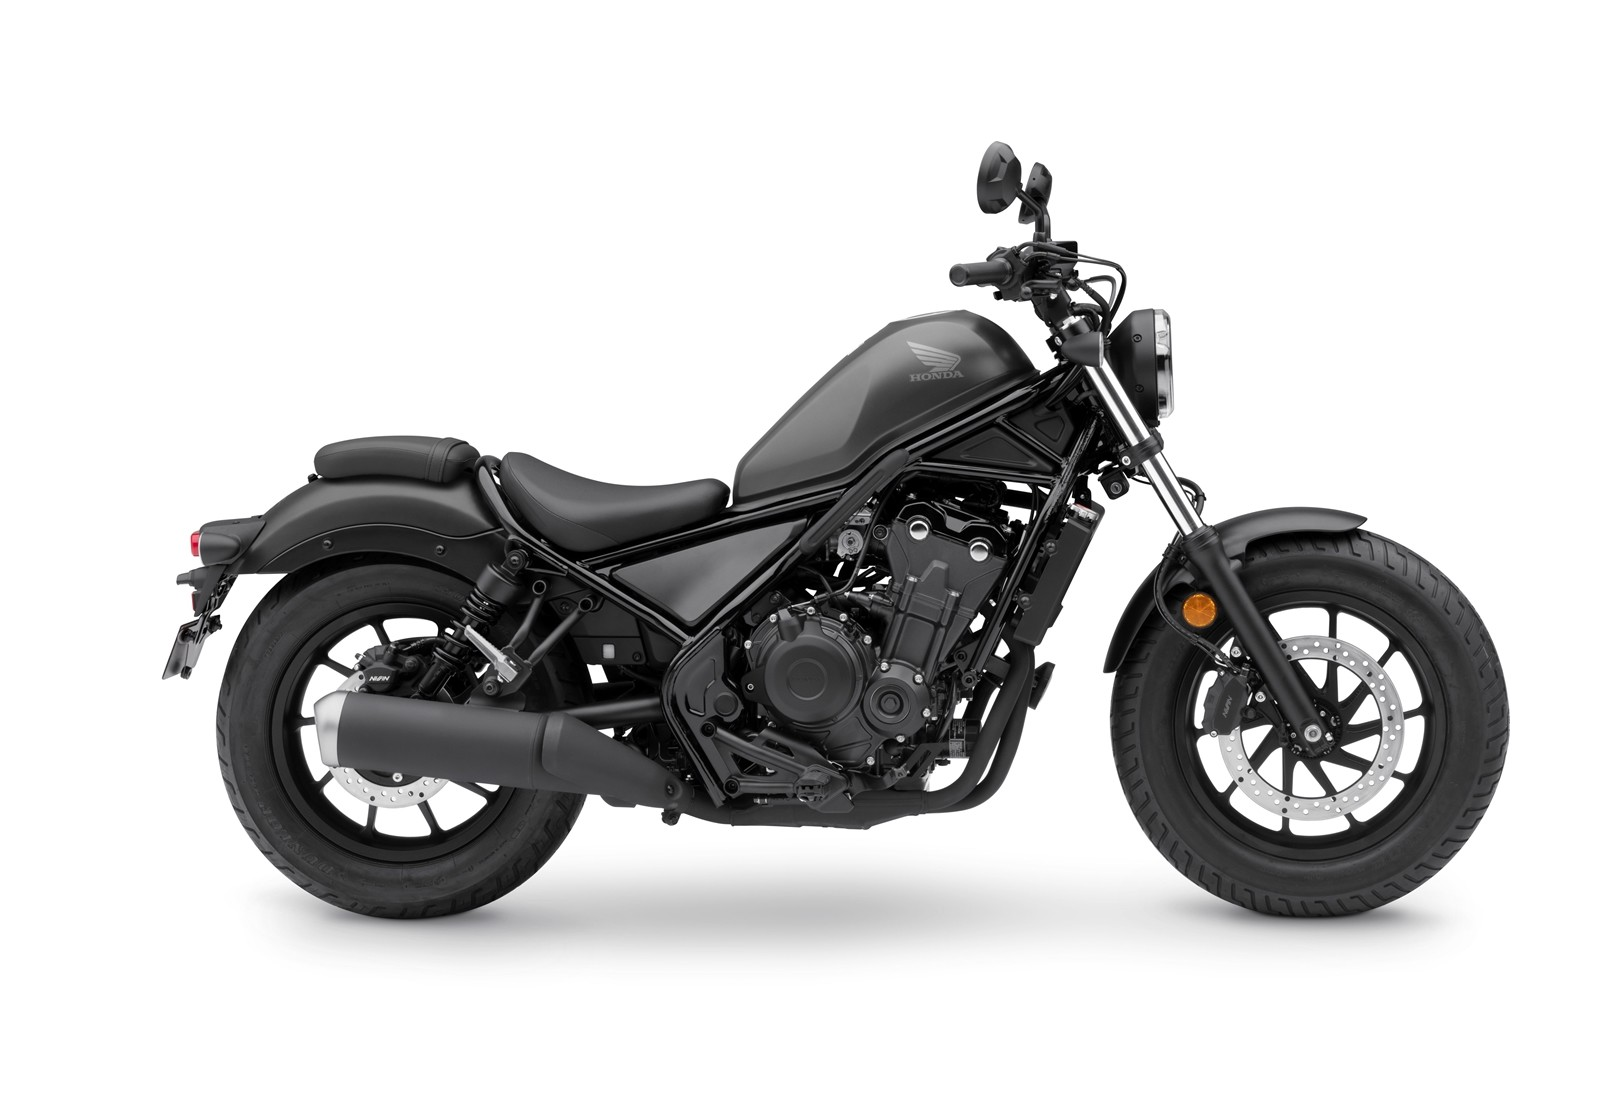 Foto de Honda Rebel 500 2020 (13/18)